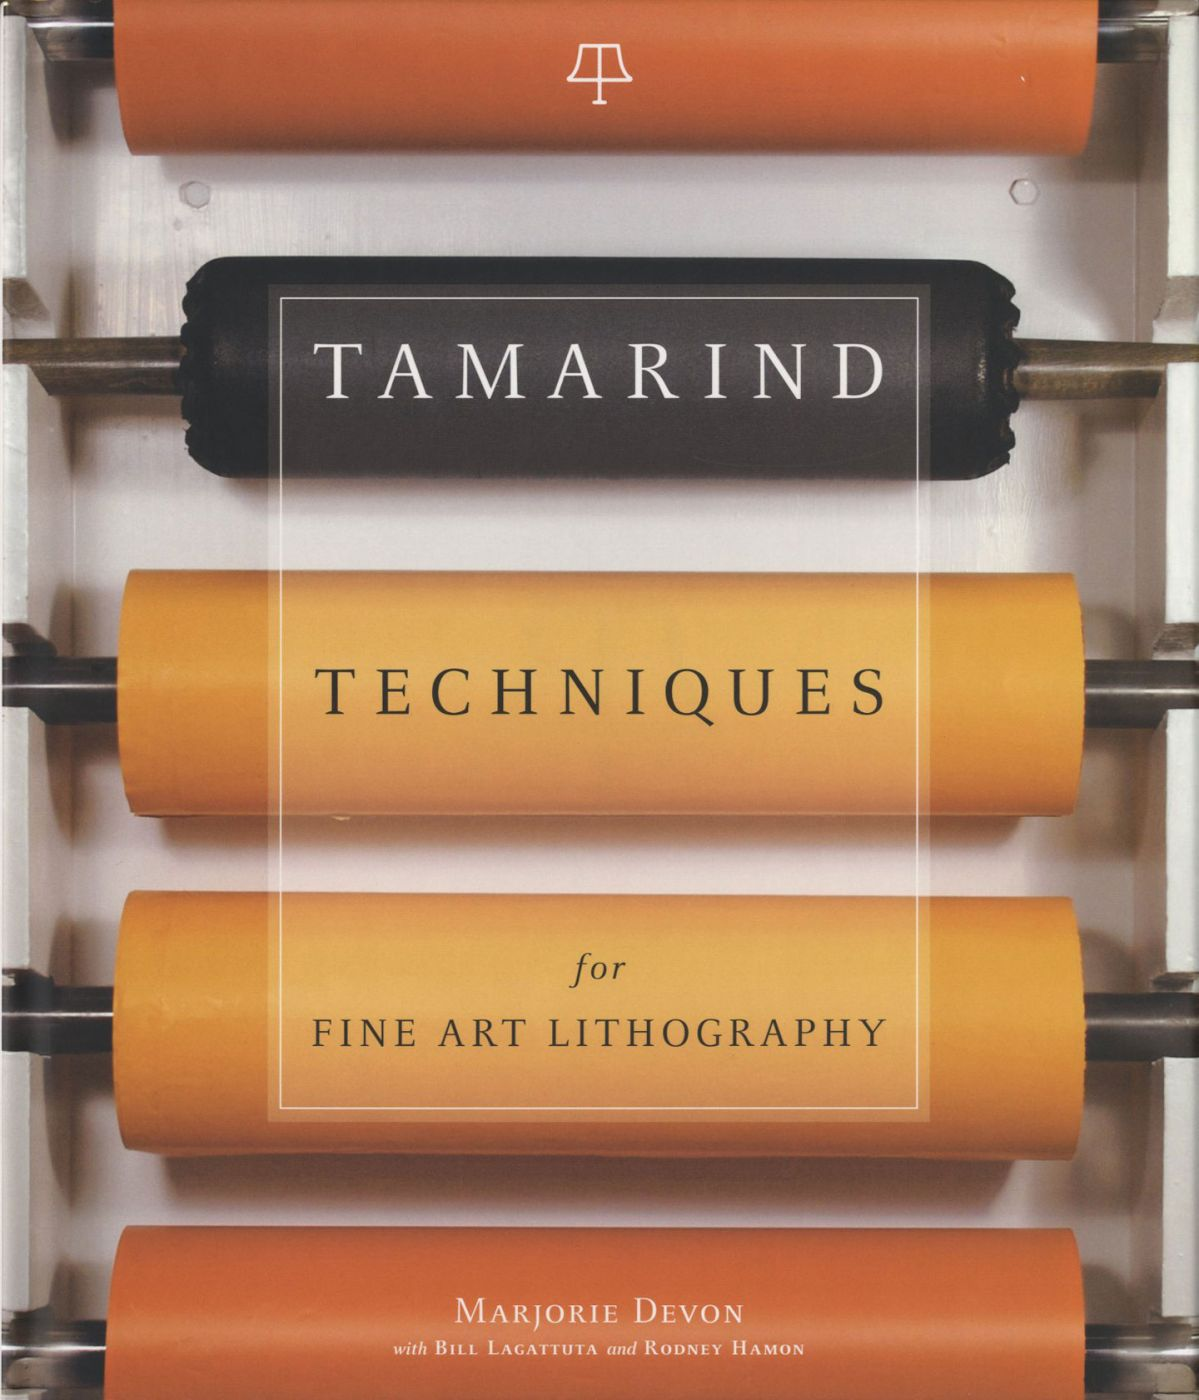 Tamarind Techniques for Fine Art Lithography [SIGNED]